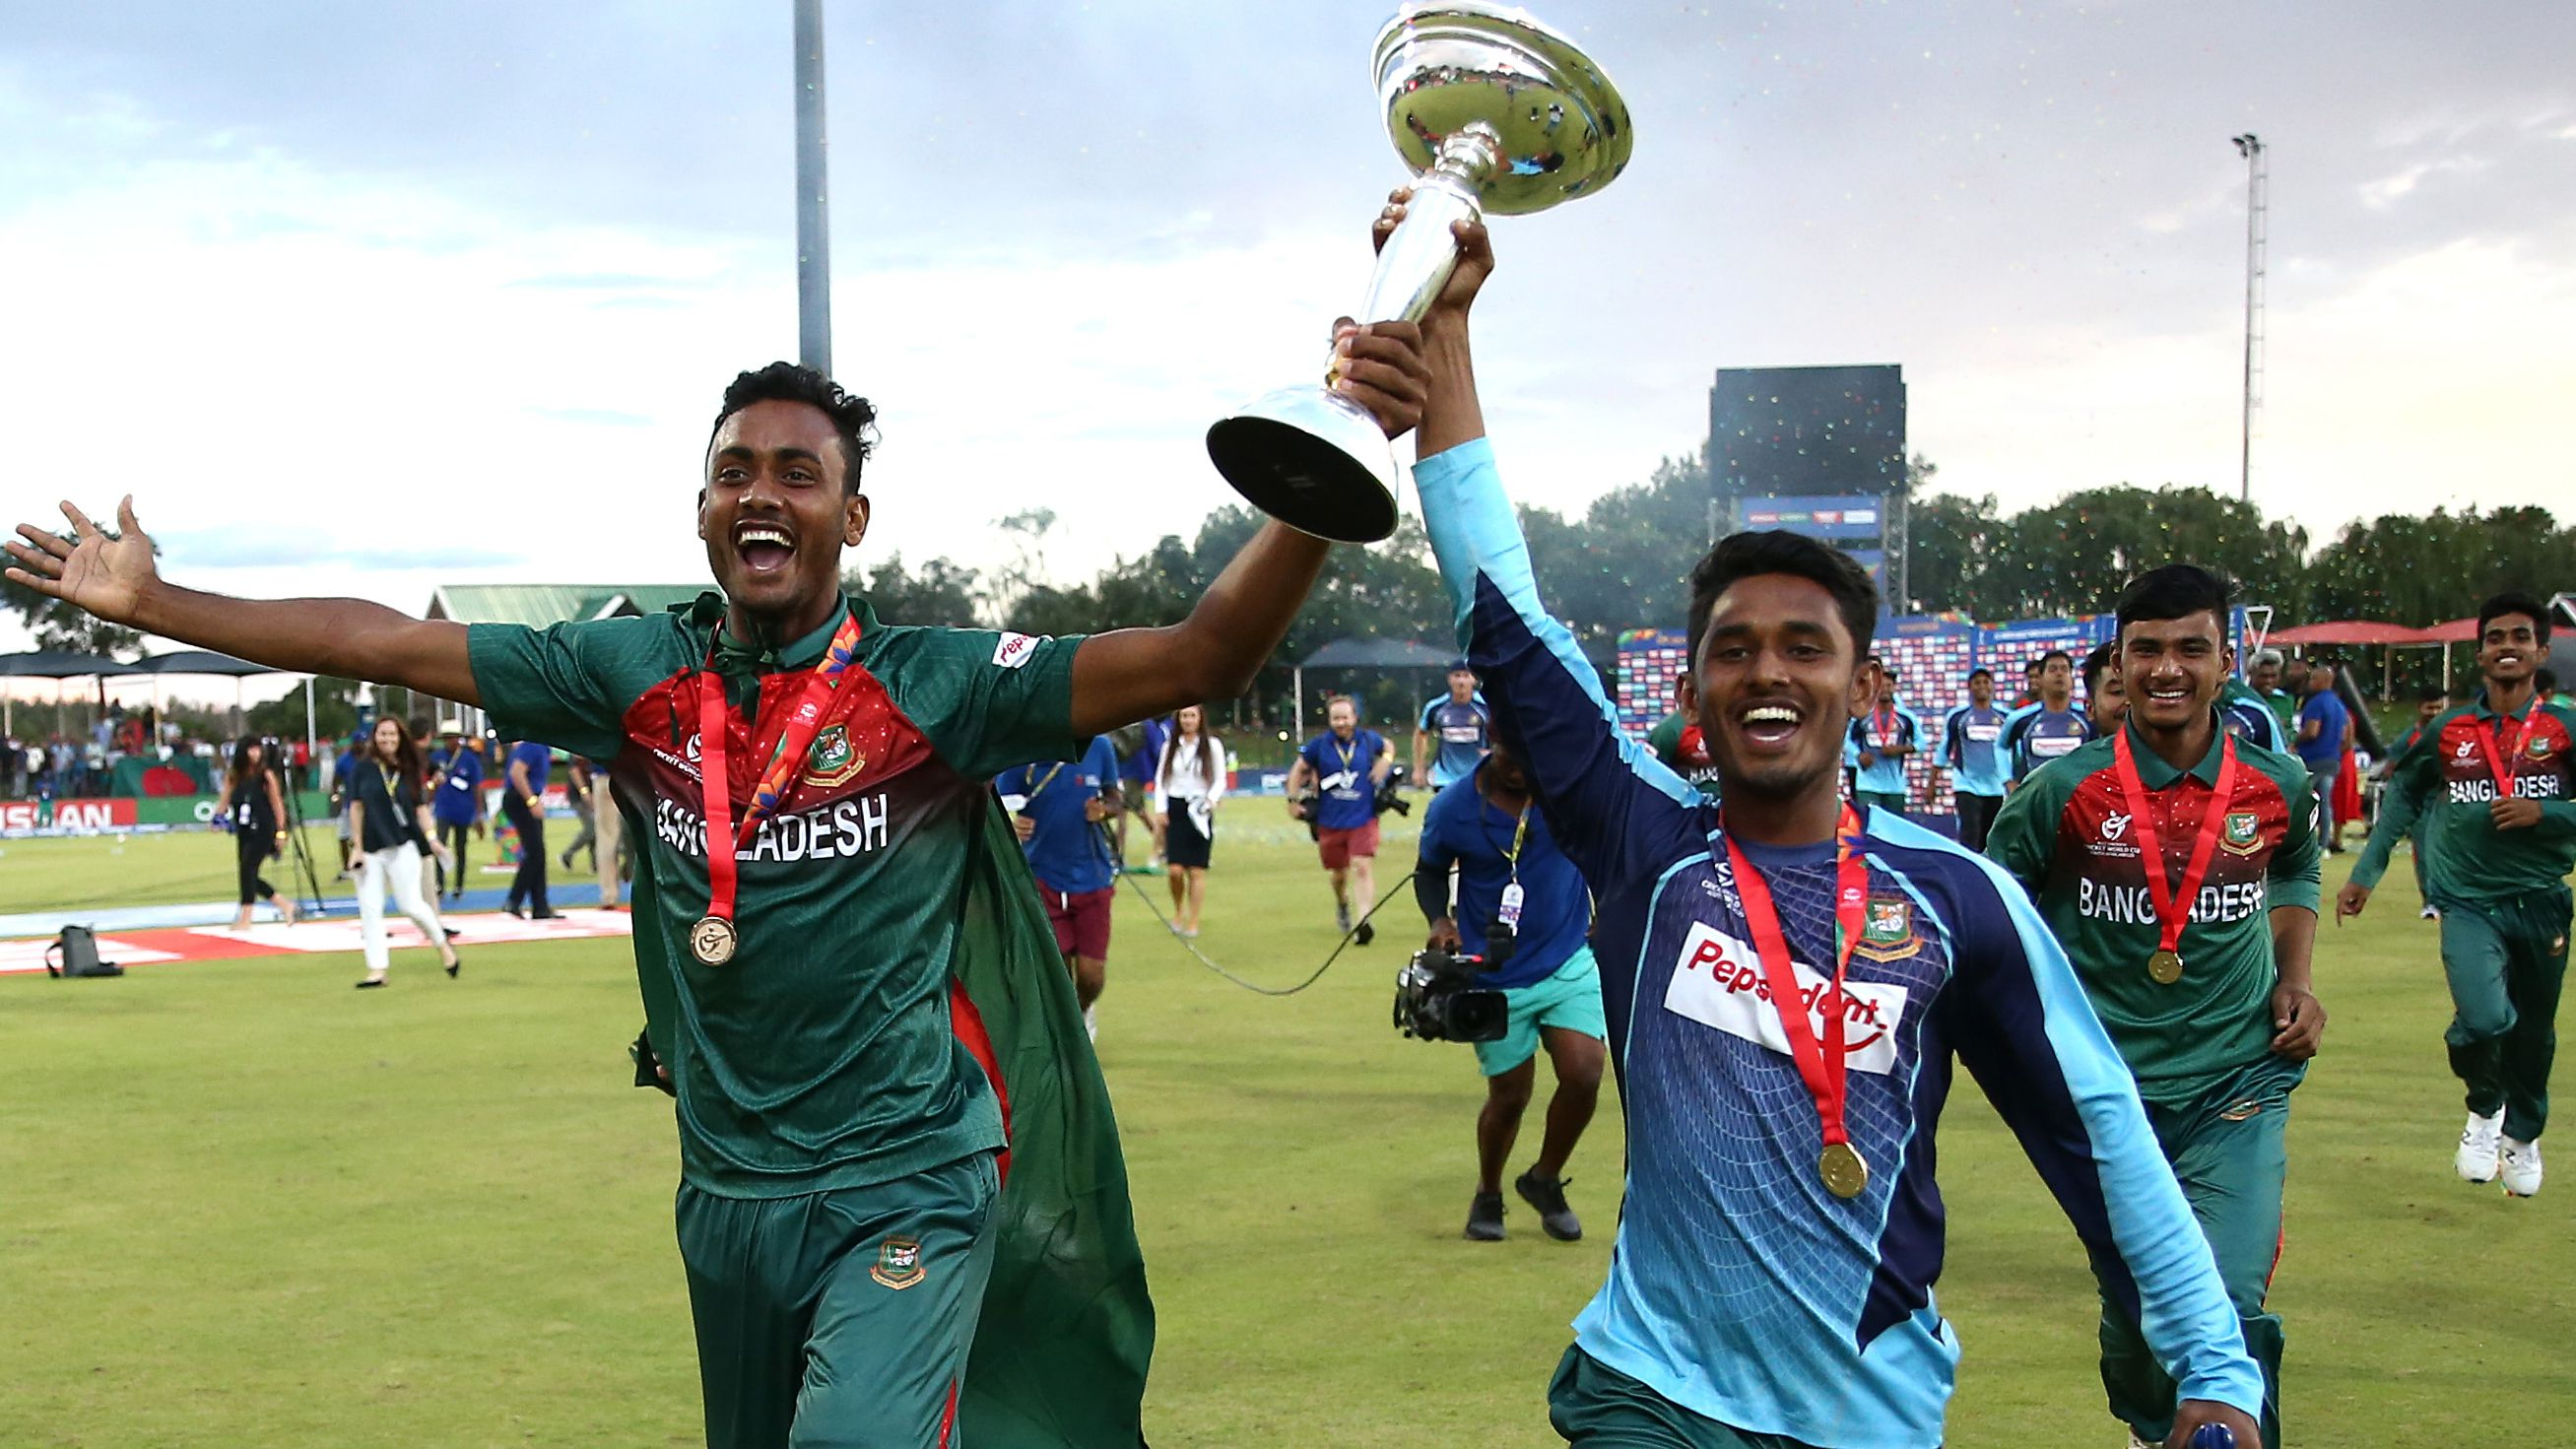 Bangladesh players celebrate with the U19s World Cup trophy.